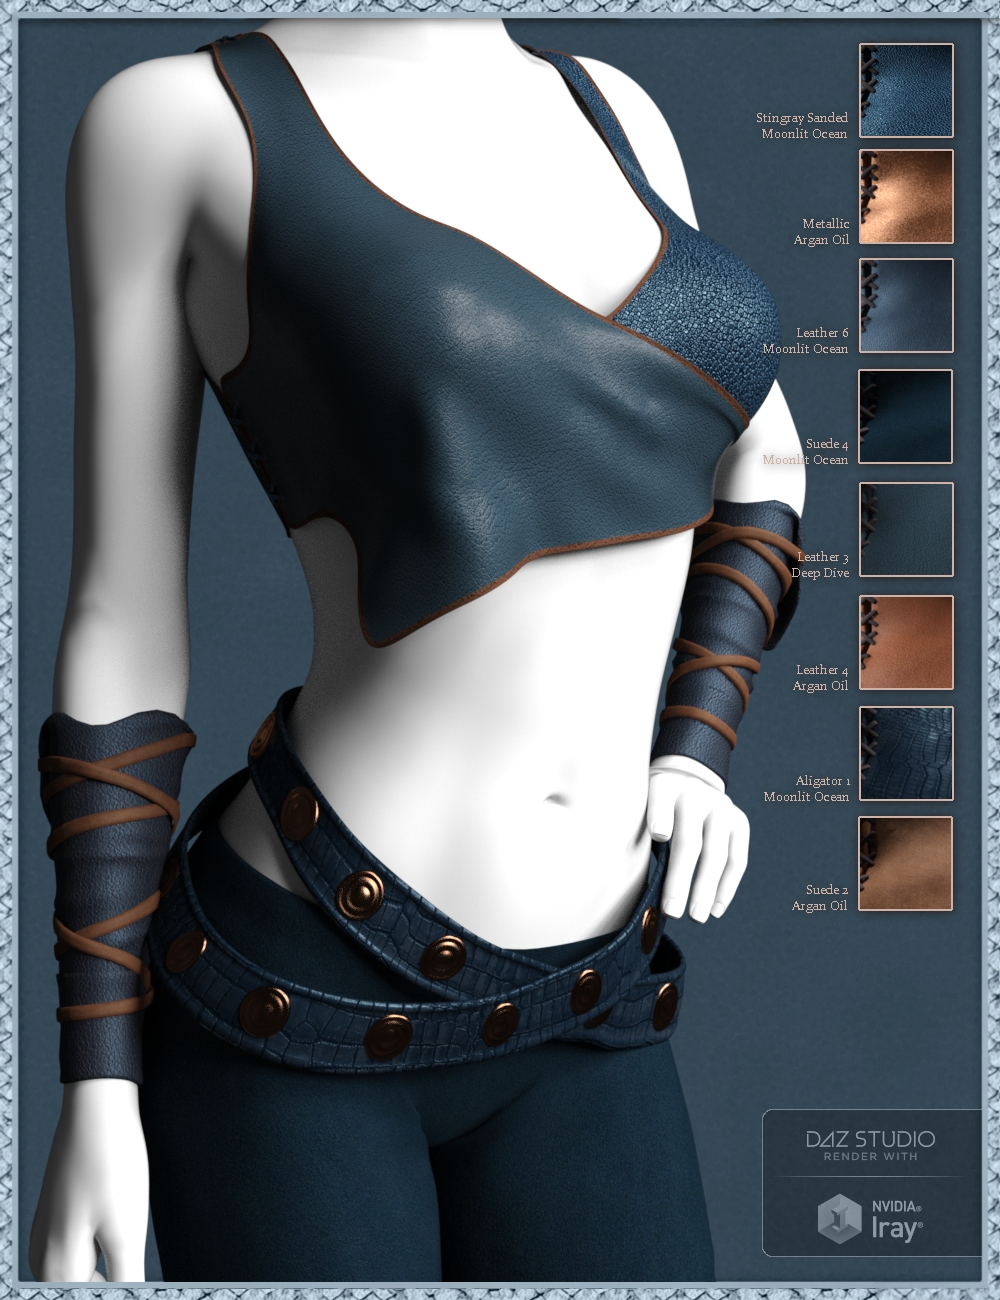 Exotic Leather Shader Presets 1 for Iray by: Handspan Studios, 3D Models by Daz 3D